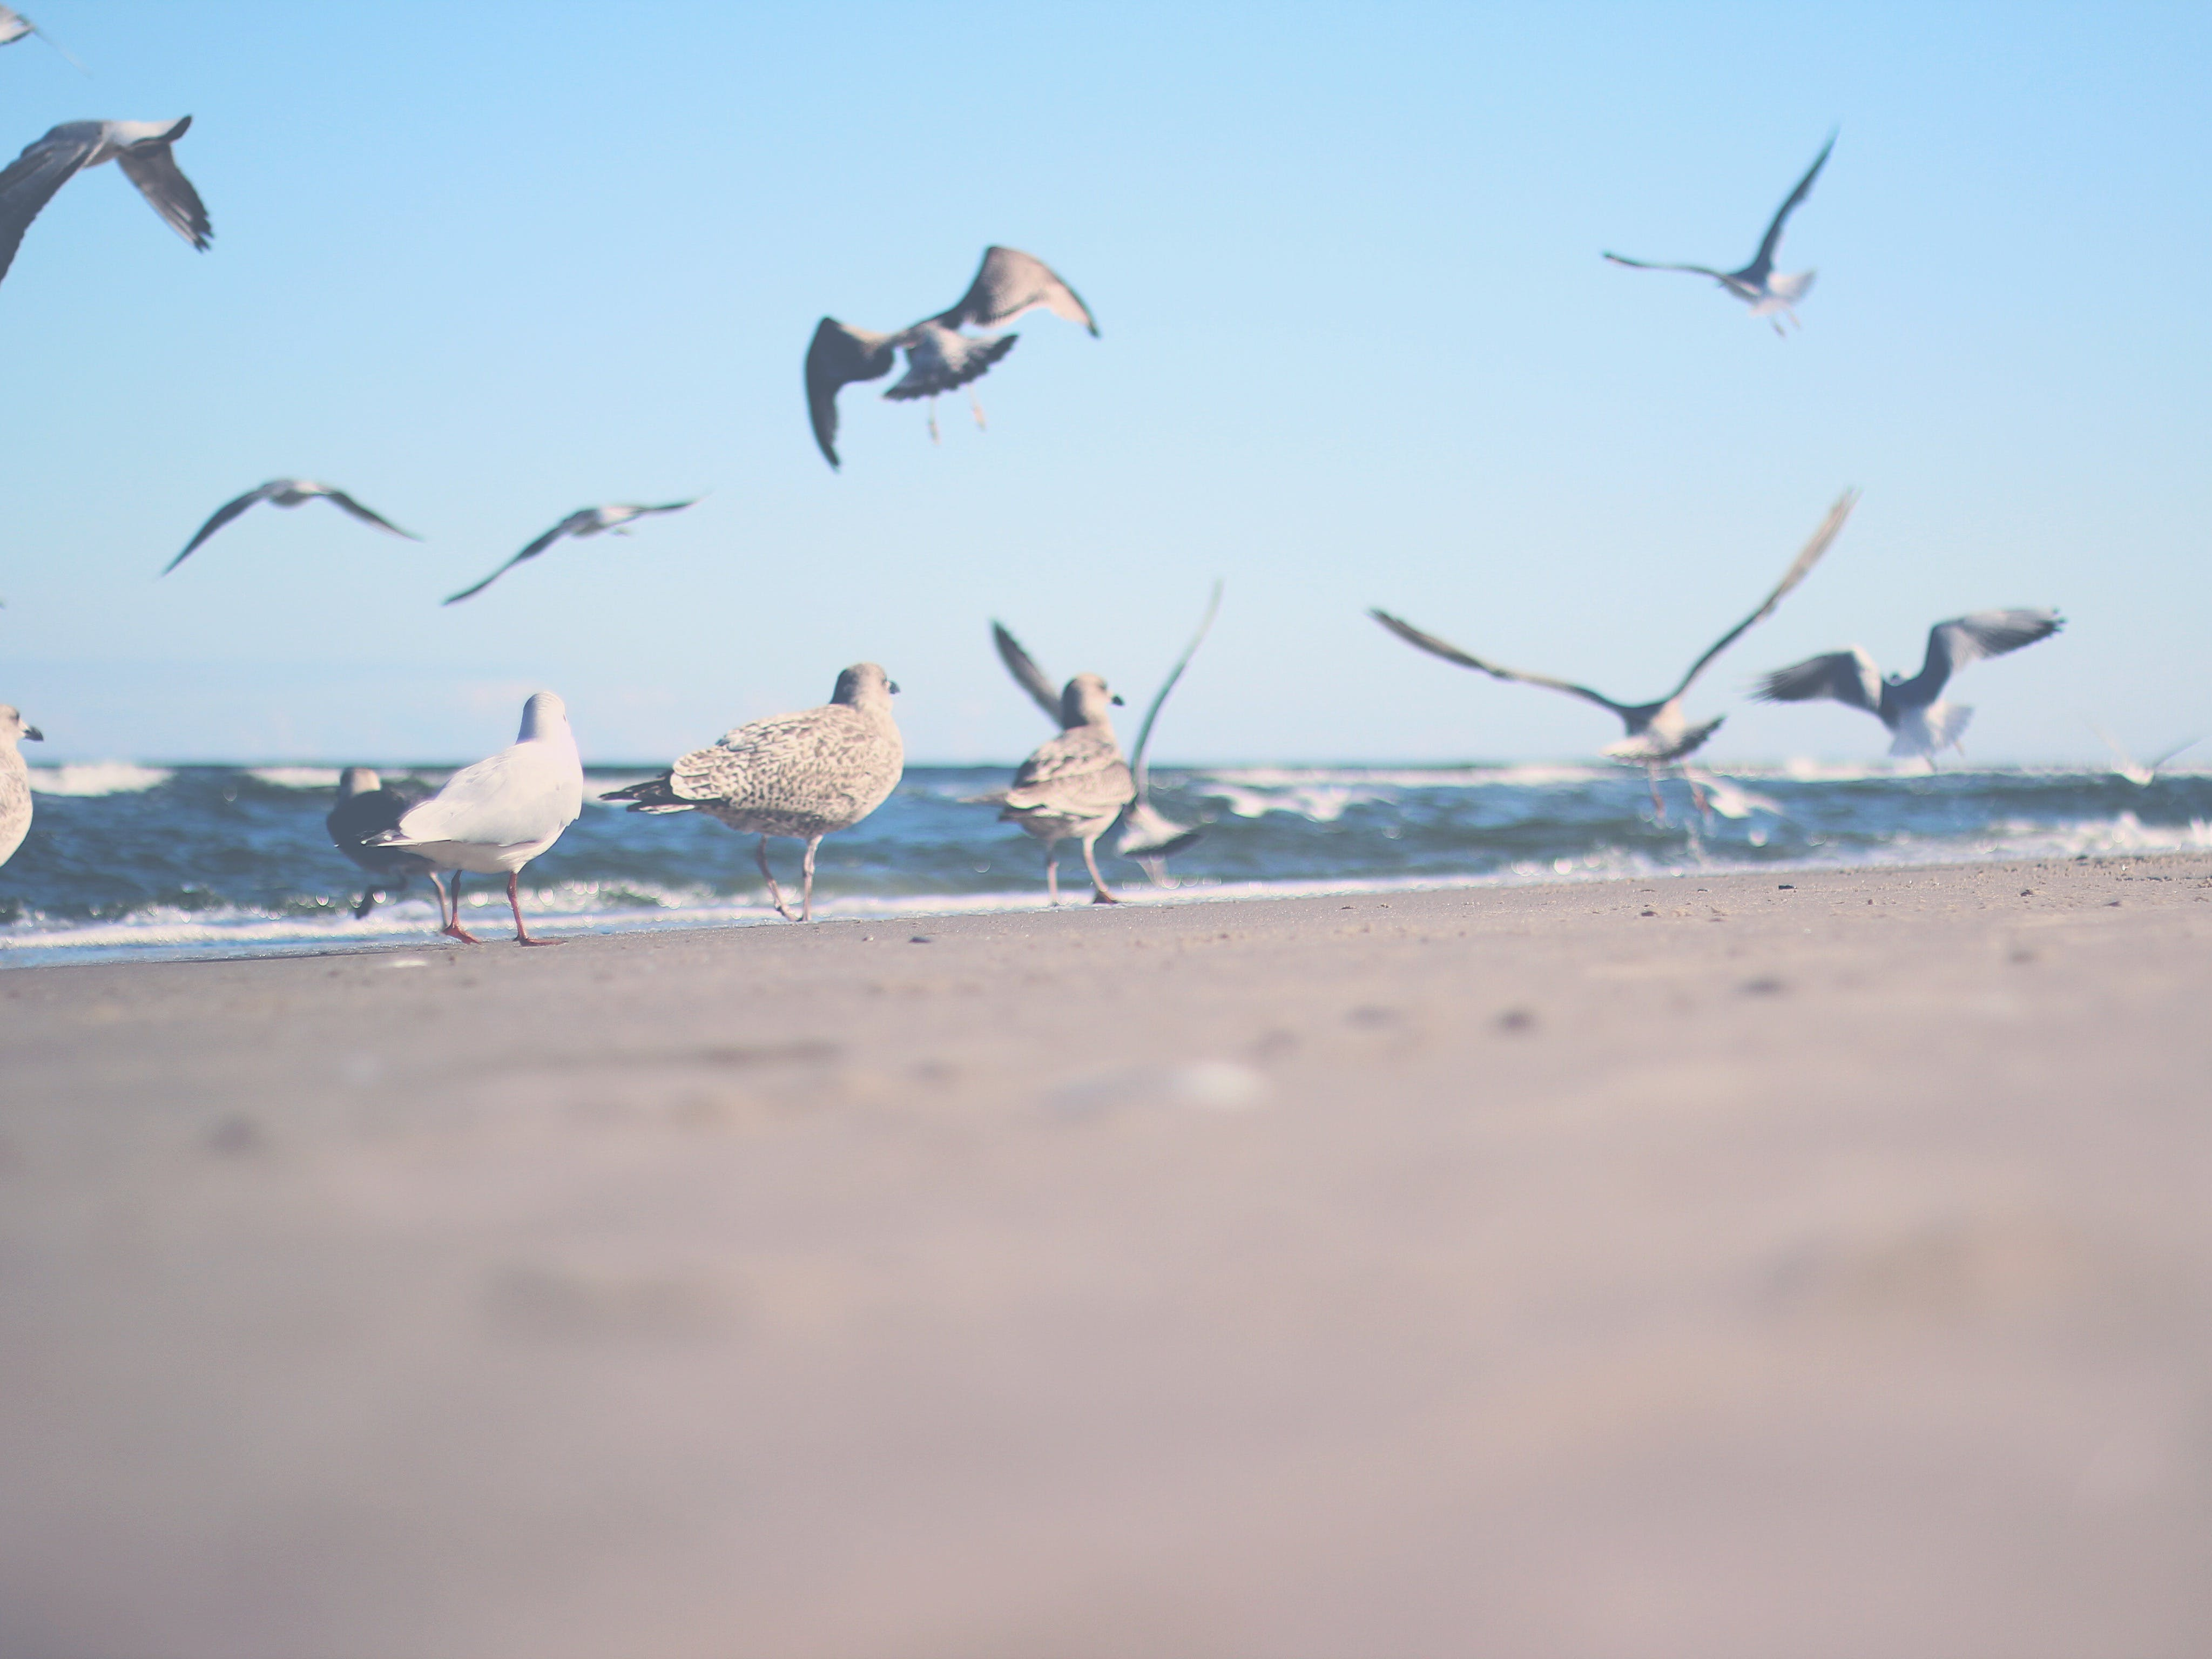 Flock of Gulls on Shore Near Ocean at Daytime